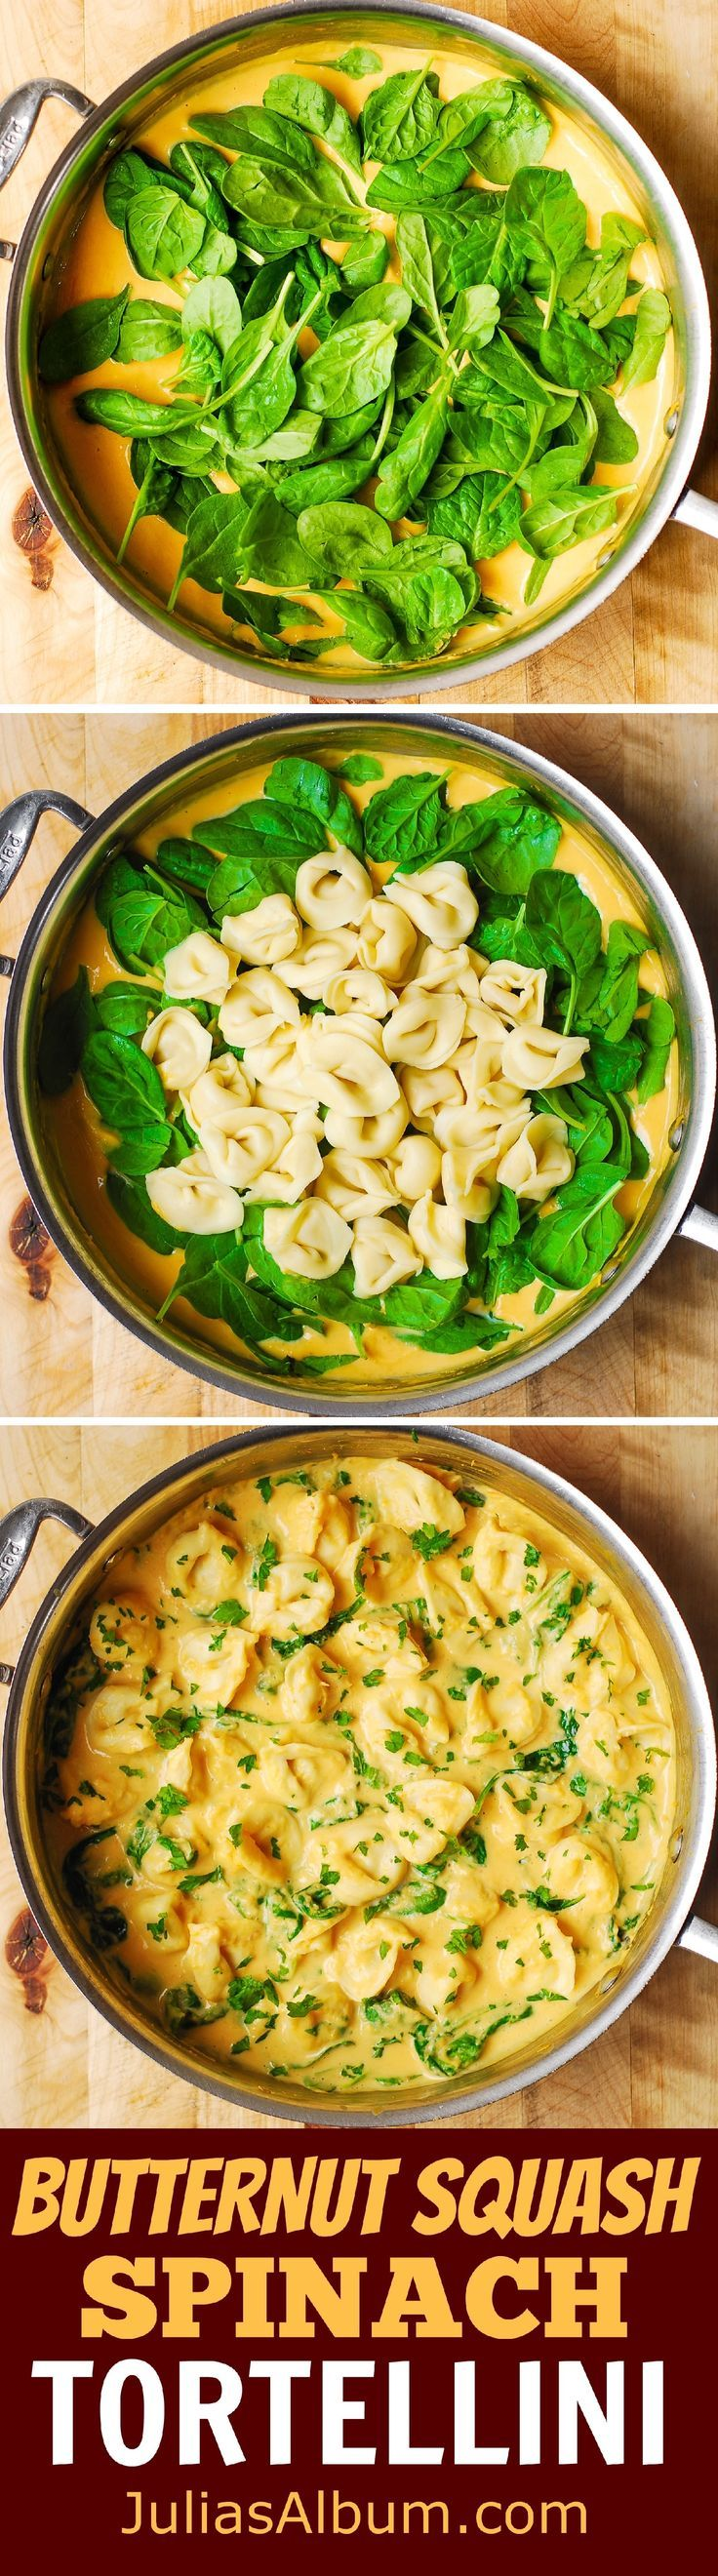 Butternut Squash and Spinach Tortellini - easy, weeknight dinner ready in just 30 minutes! (Butternut Squash Recipes)